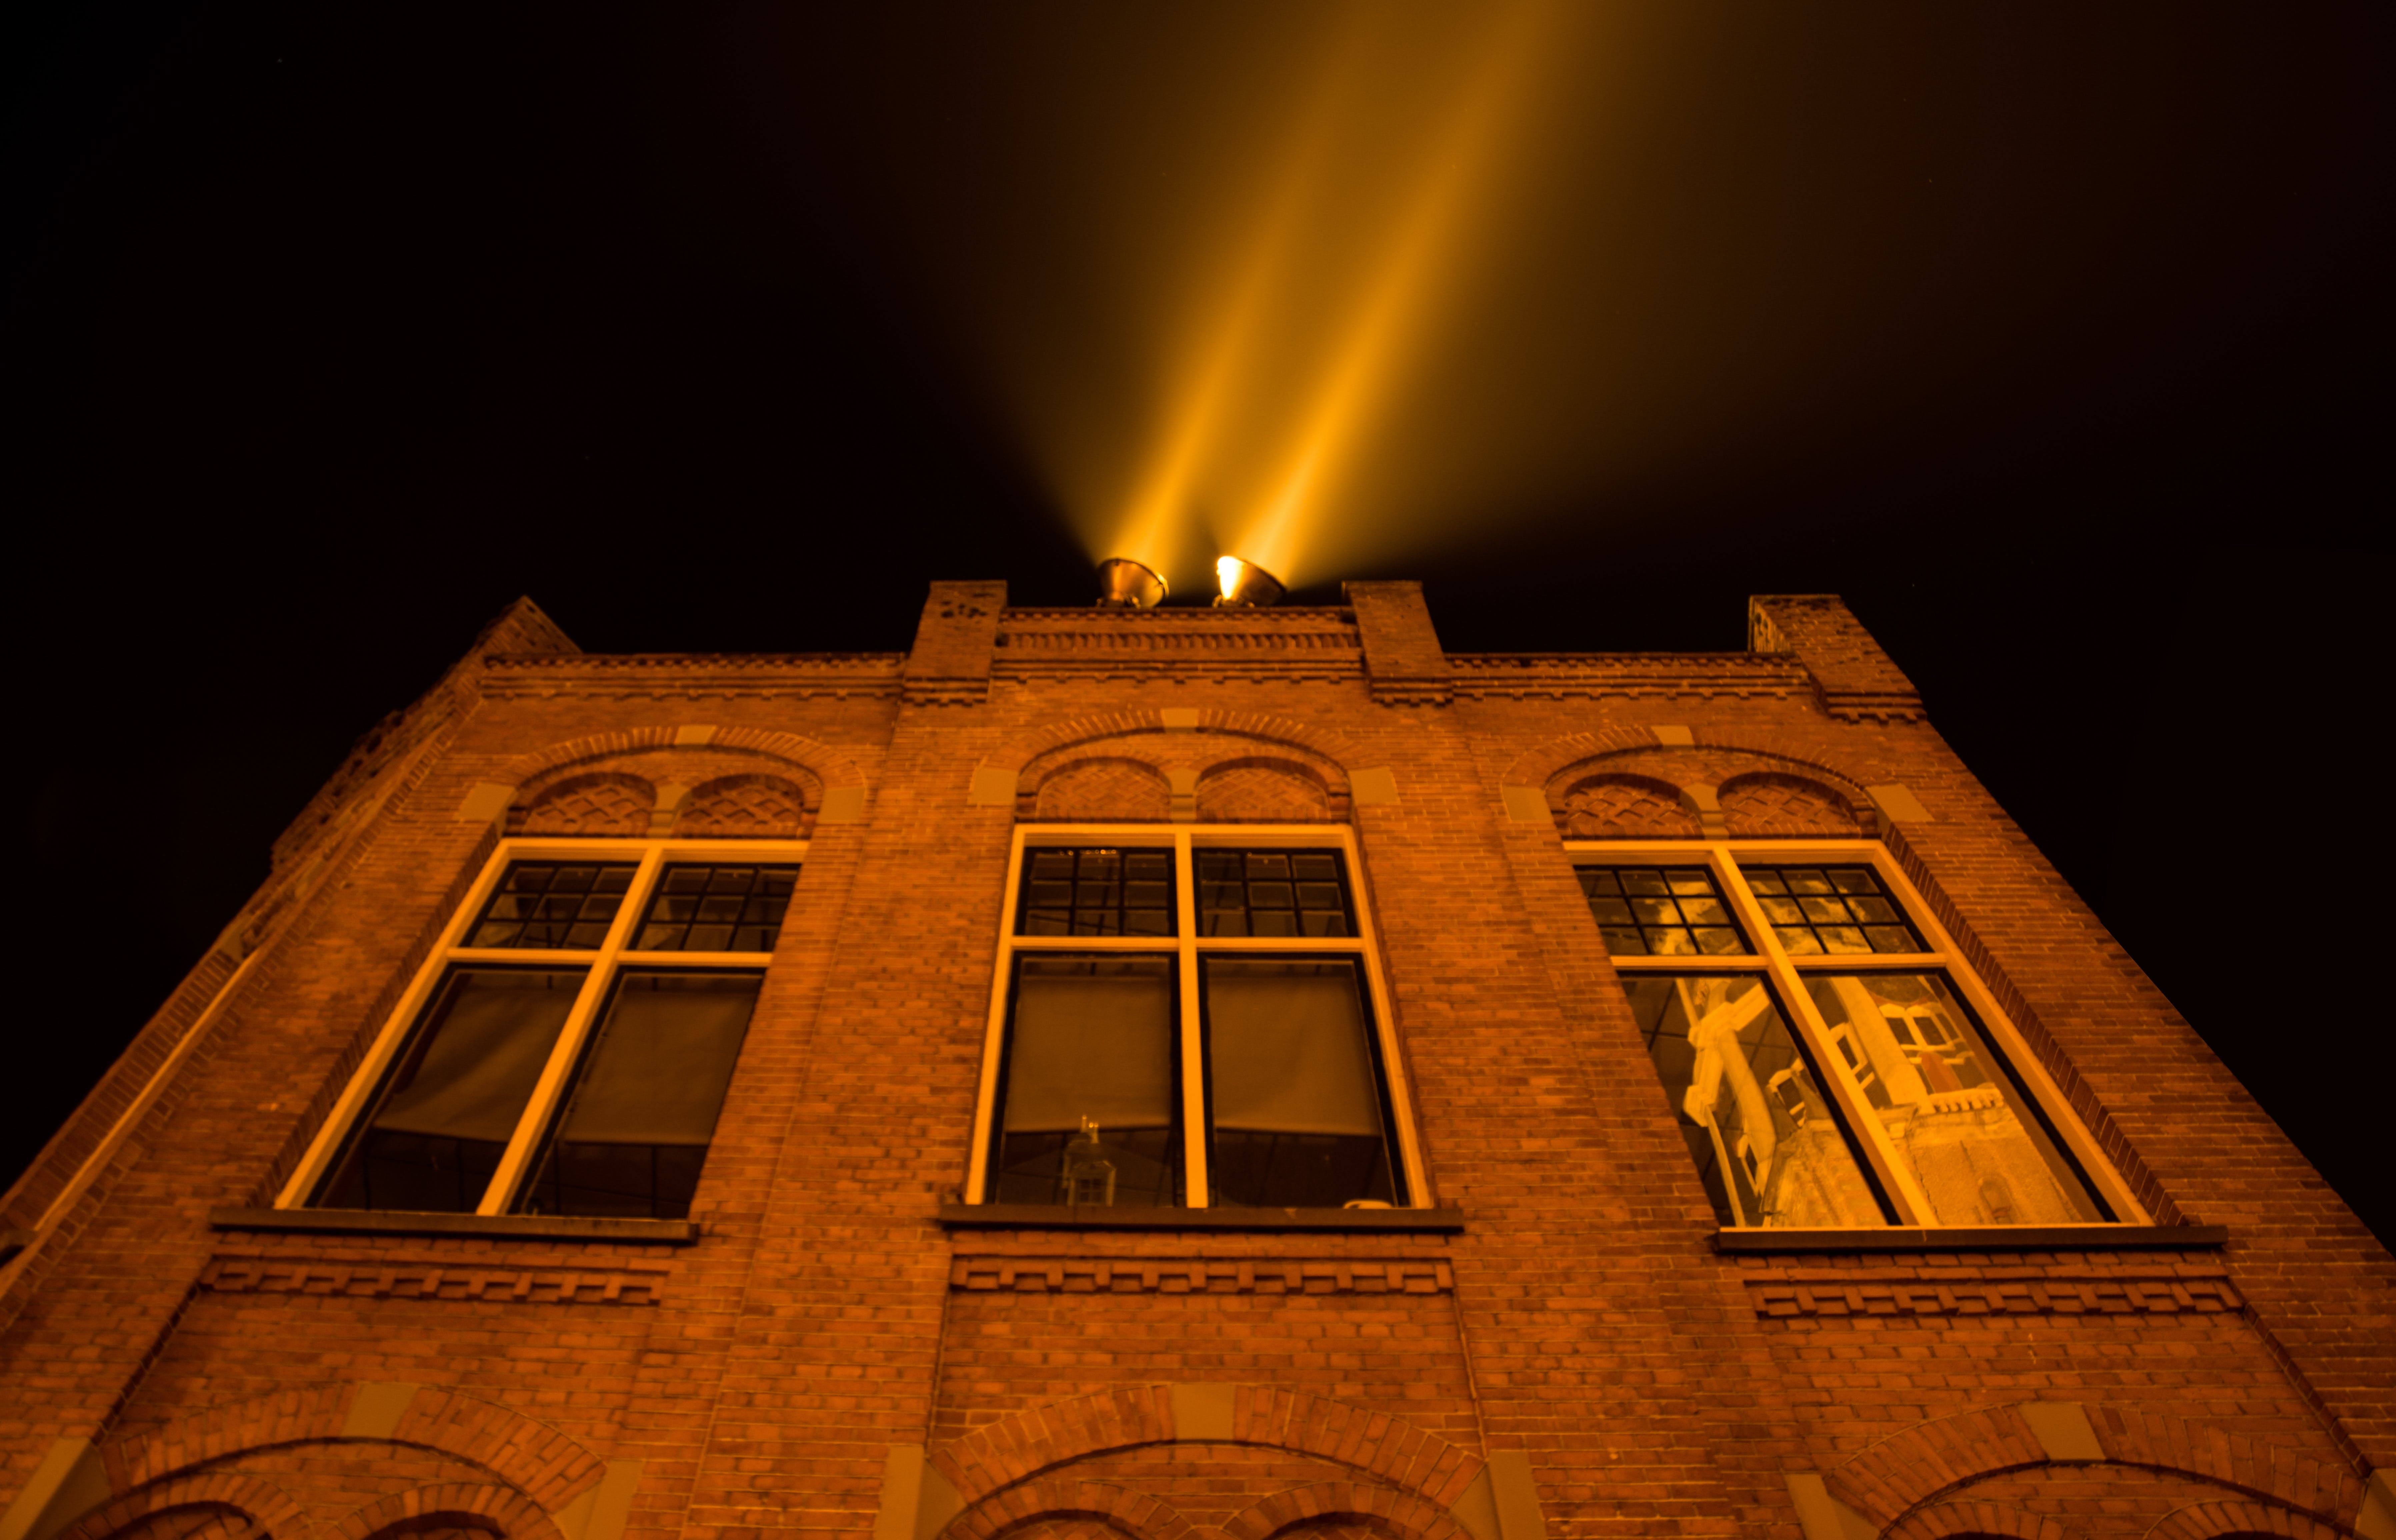 Bricked Building White Light on Rooftop